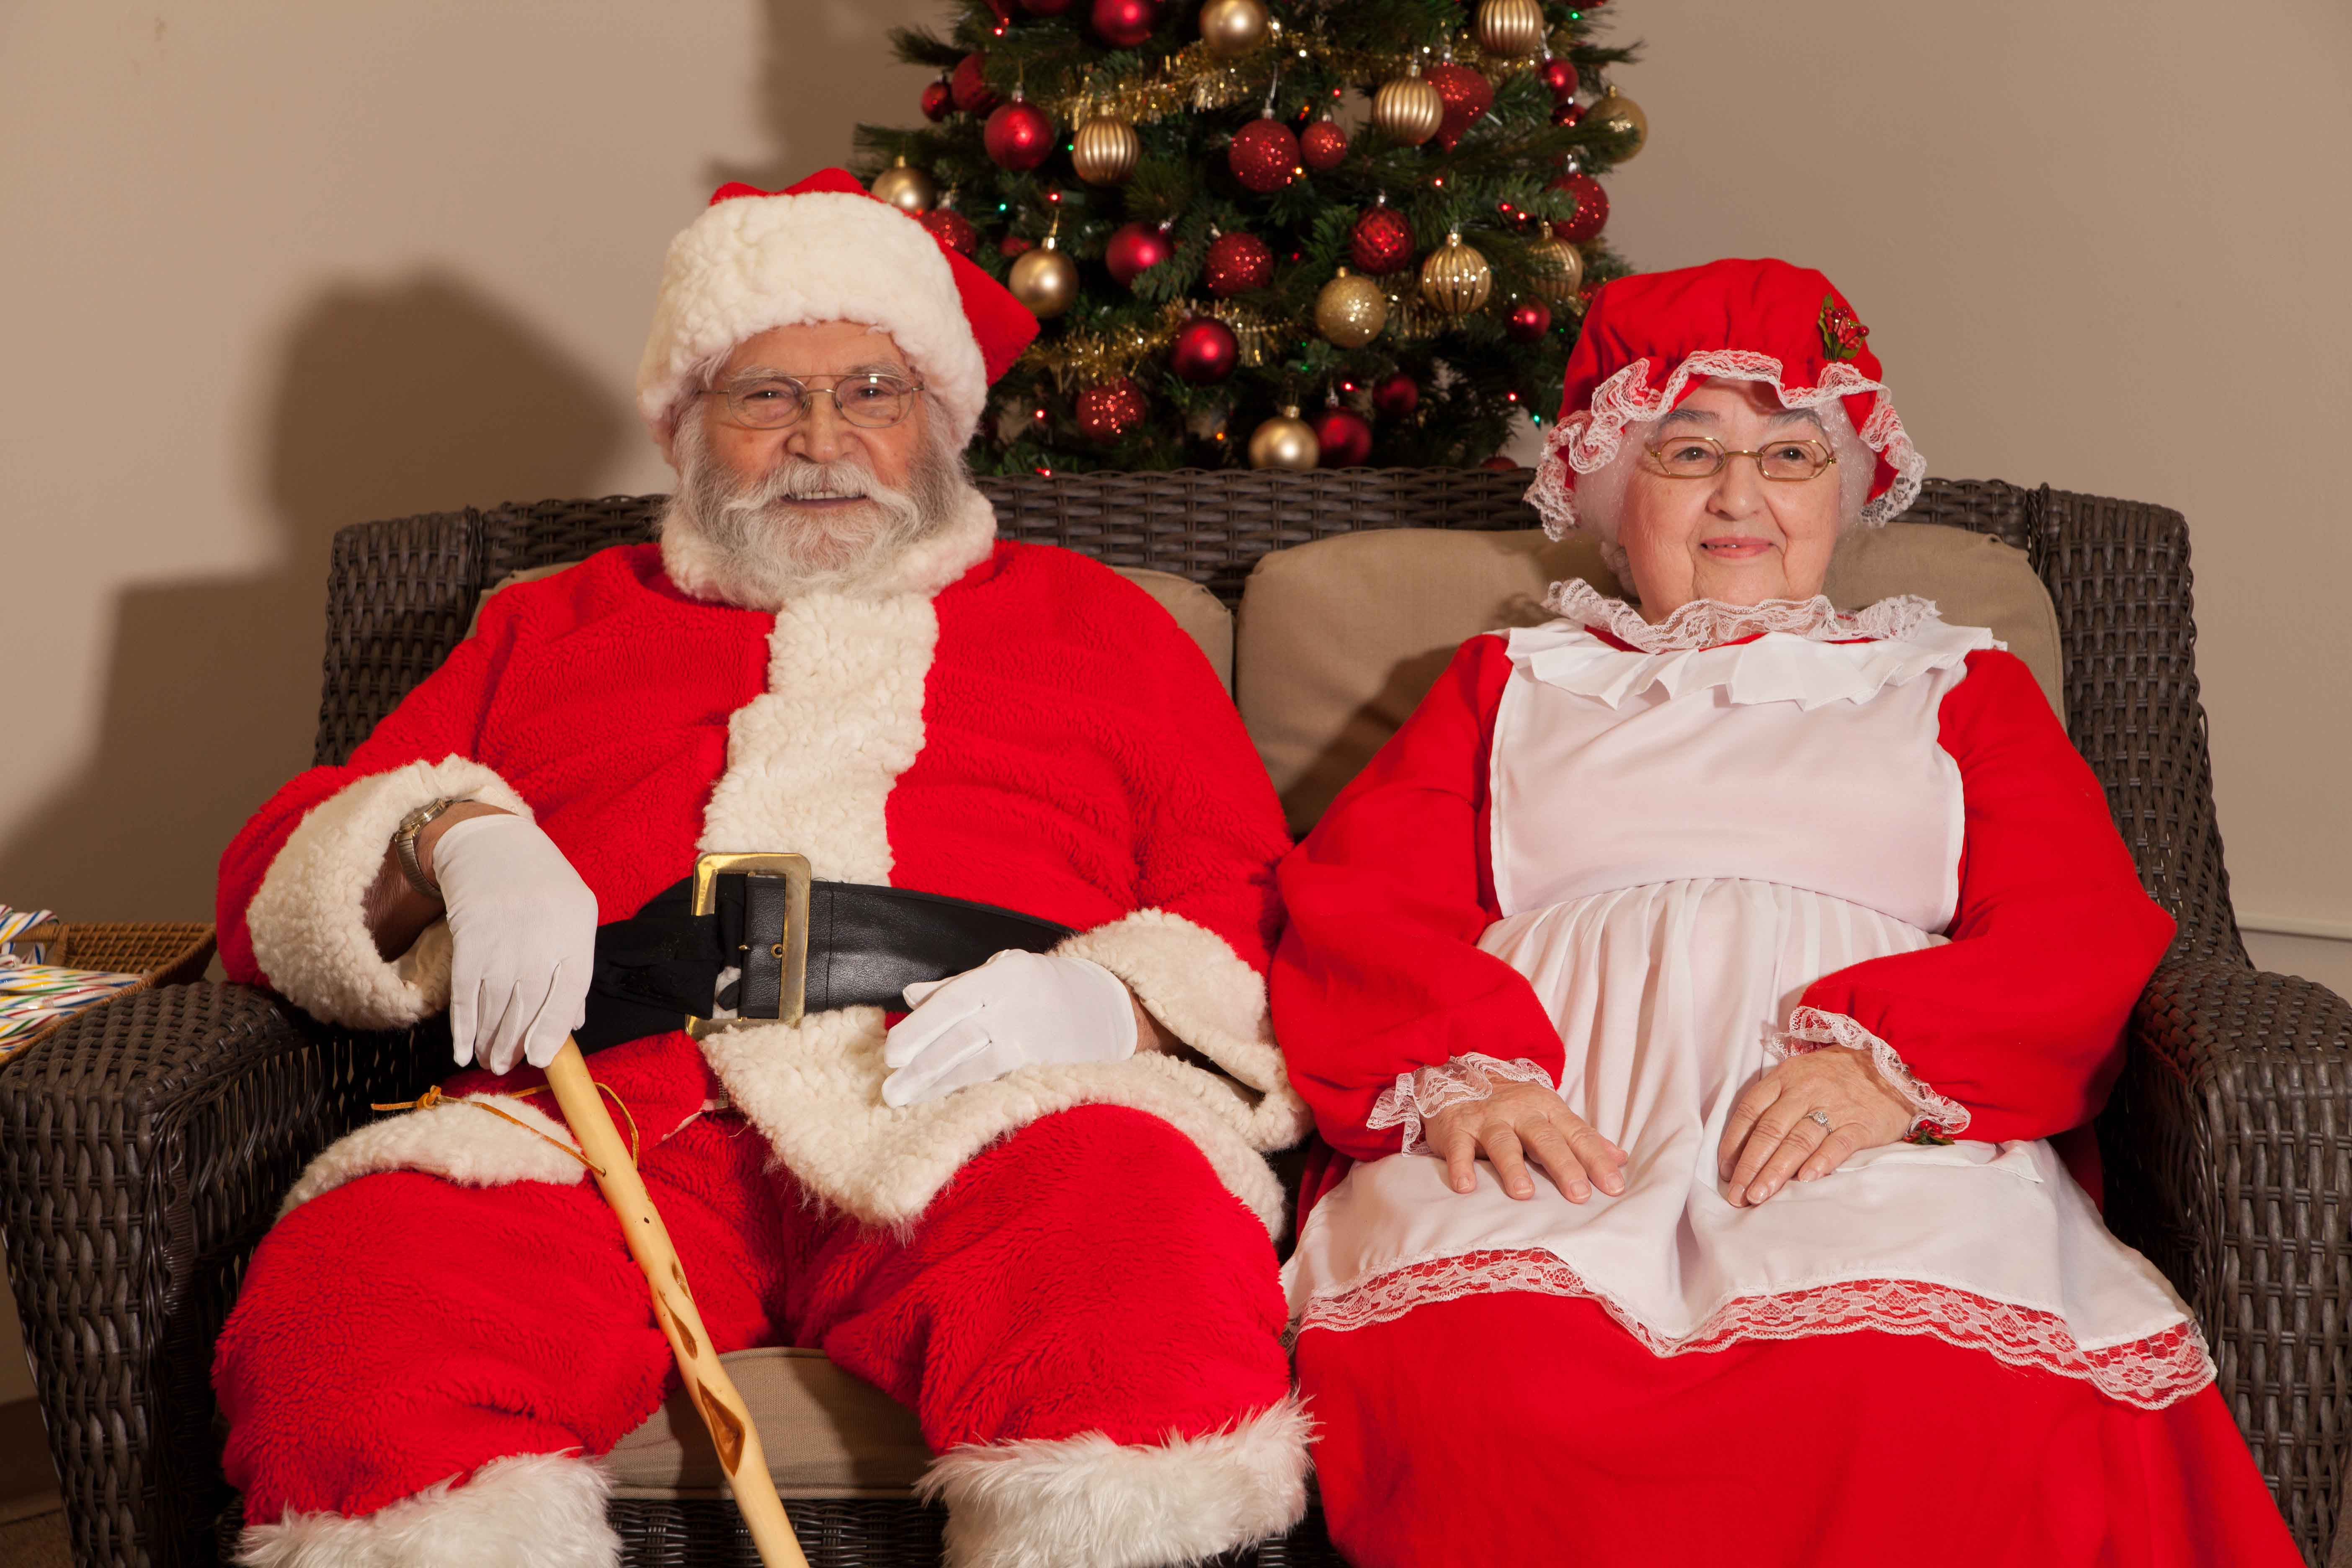 Santa and Mrs. Claus at Lakeview Towers